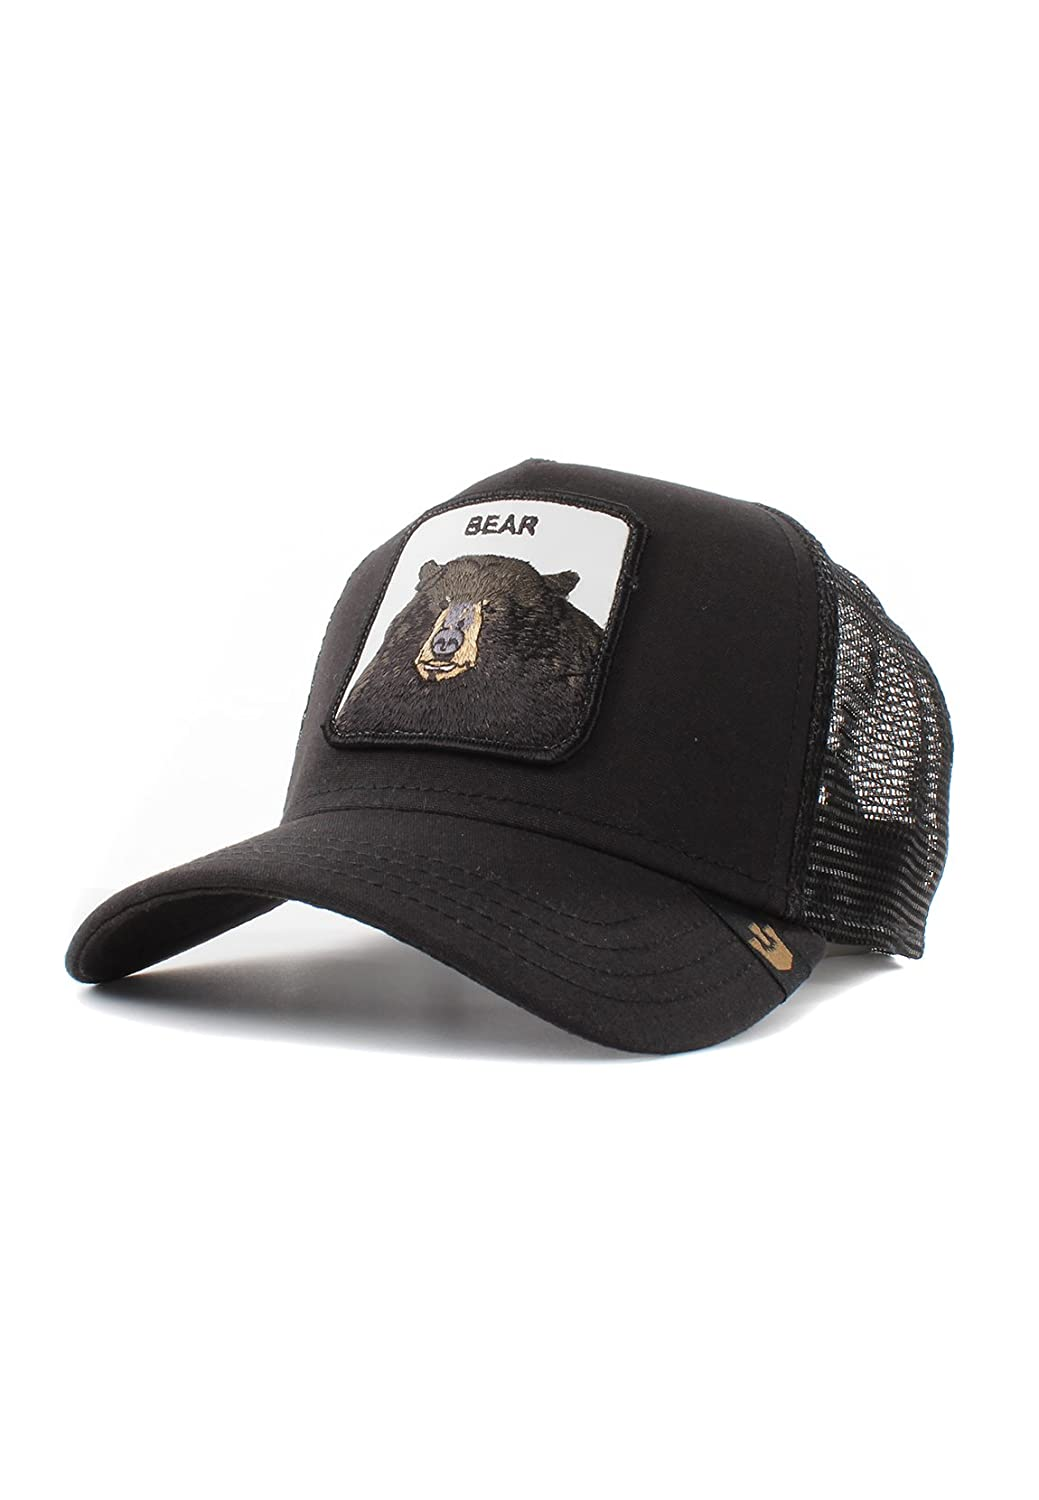 5132be7c Goorin Bros. Mens 'Black Bear' Bear Trucker Snapback Baseball Hat at Amazon  Men's Clothing store: